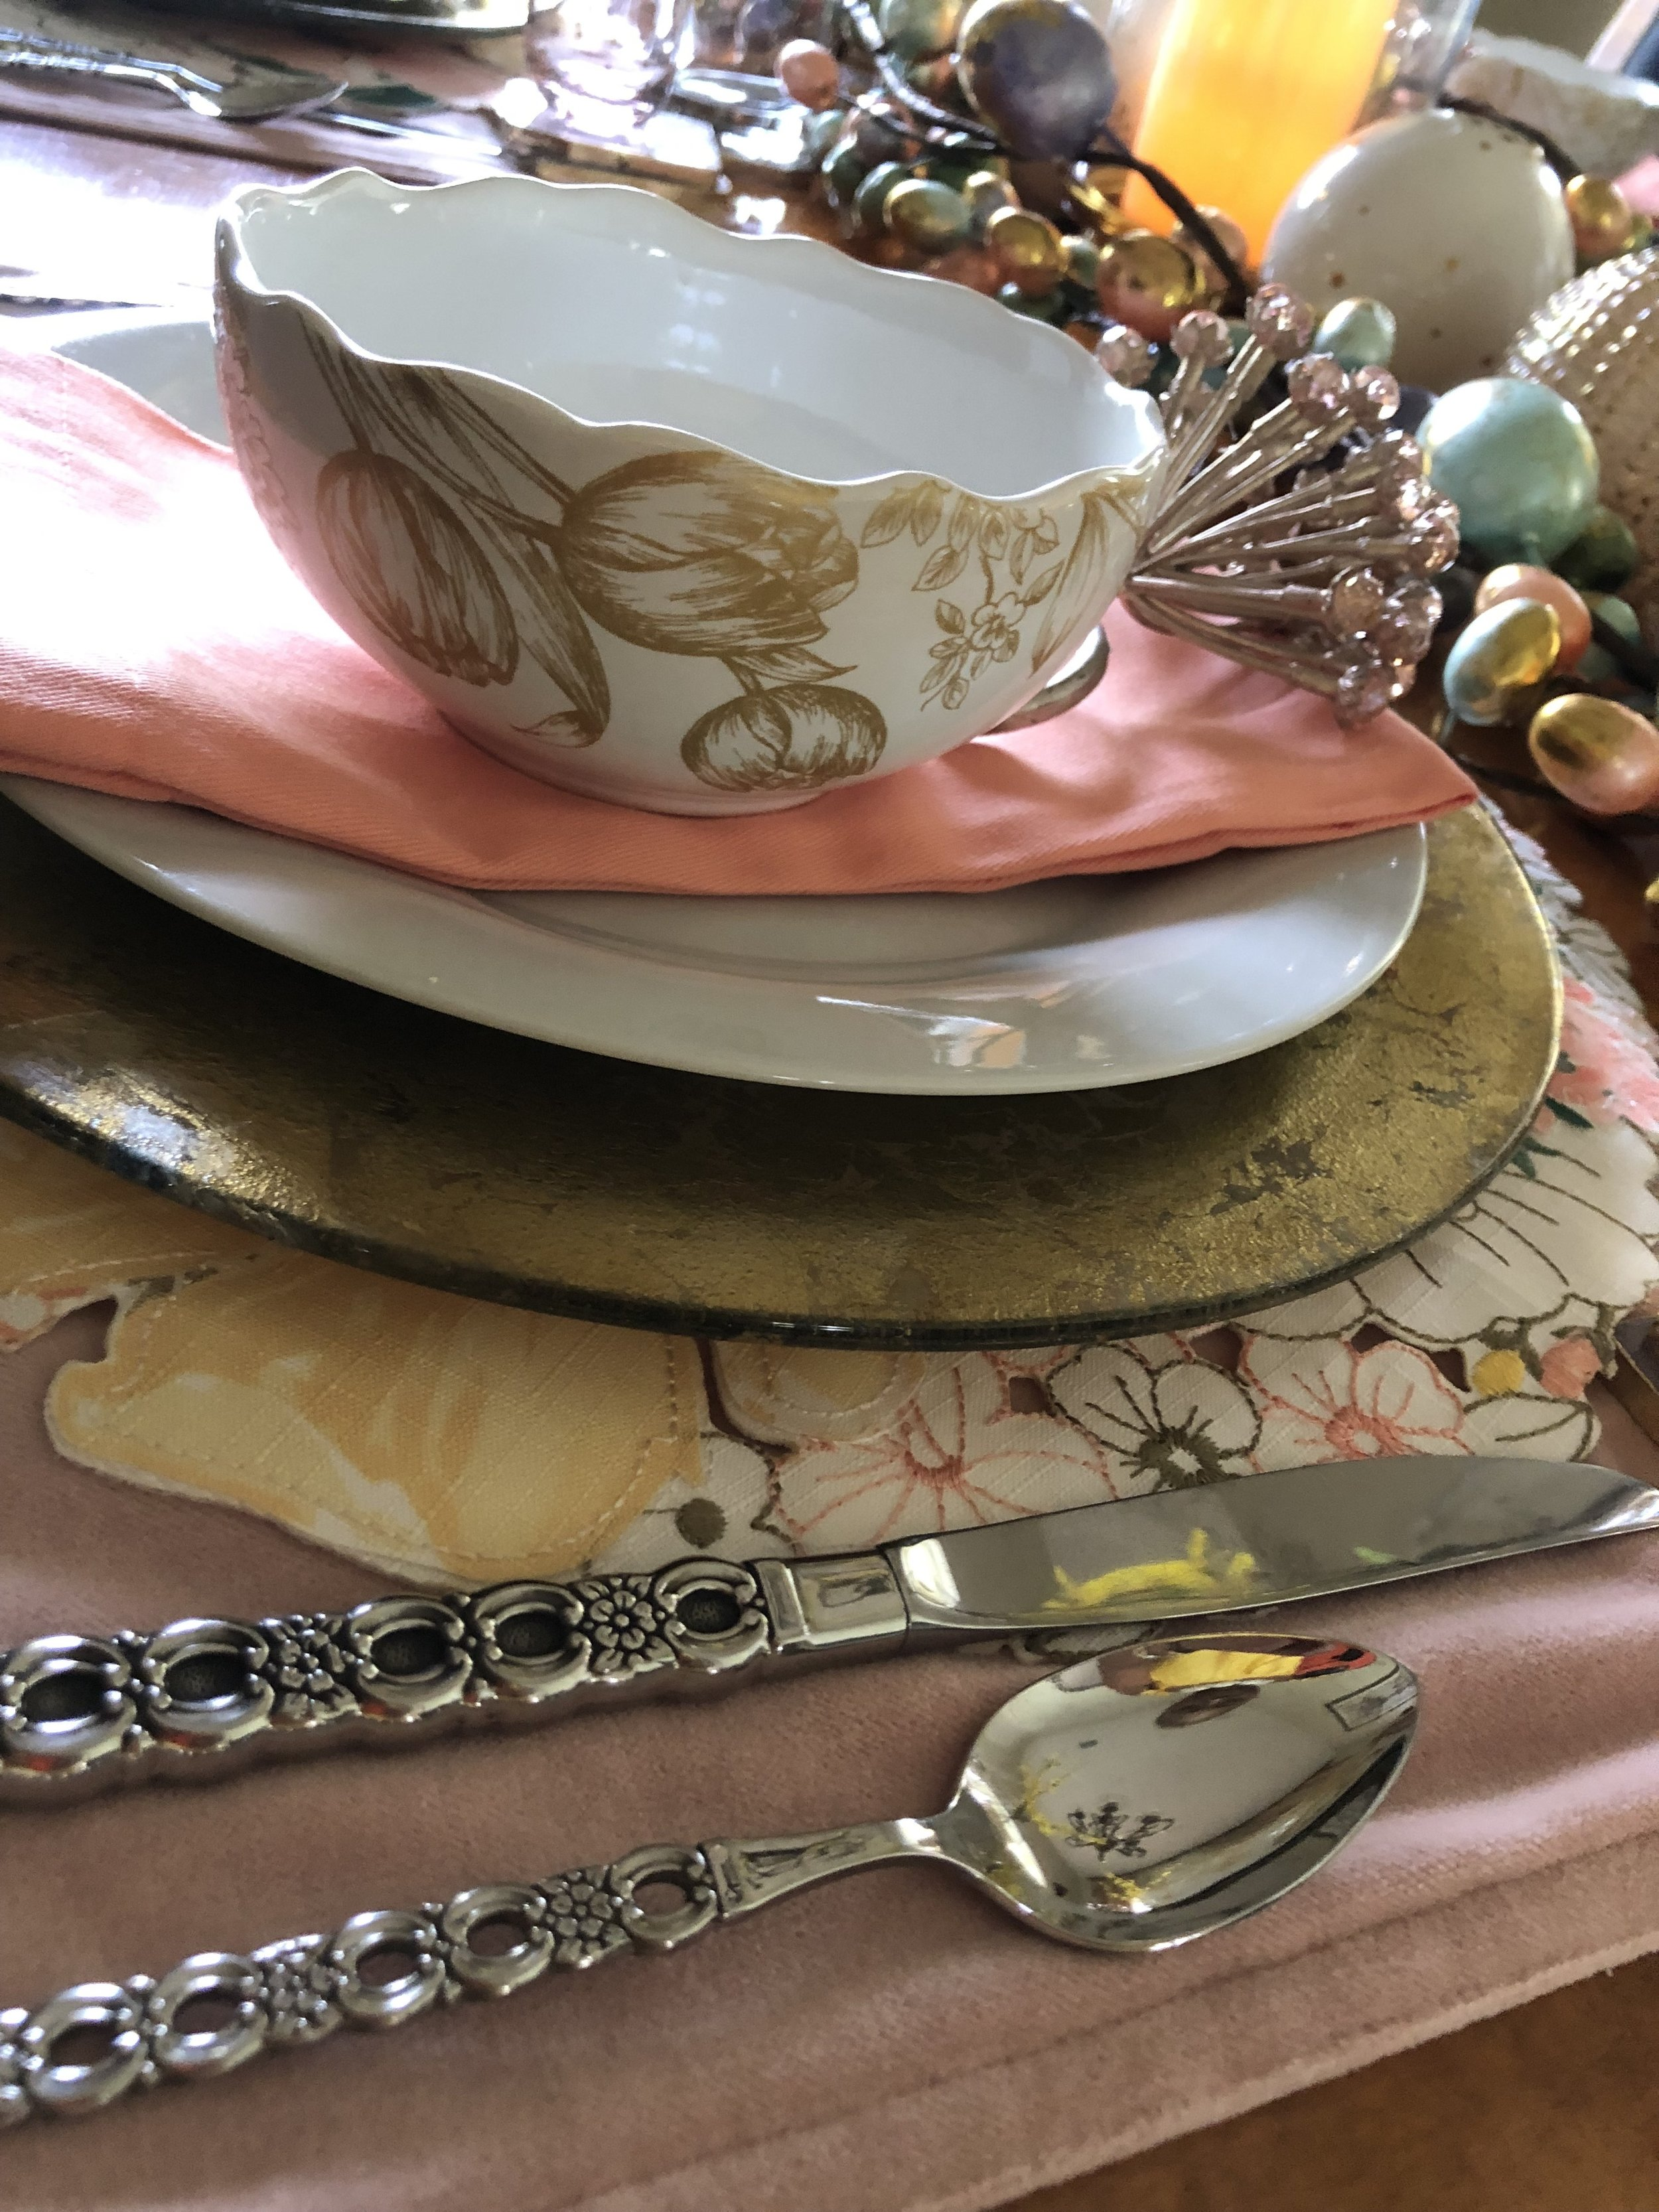 Our Grandmother's silverware is used as the flatware throughout the design.